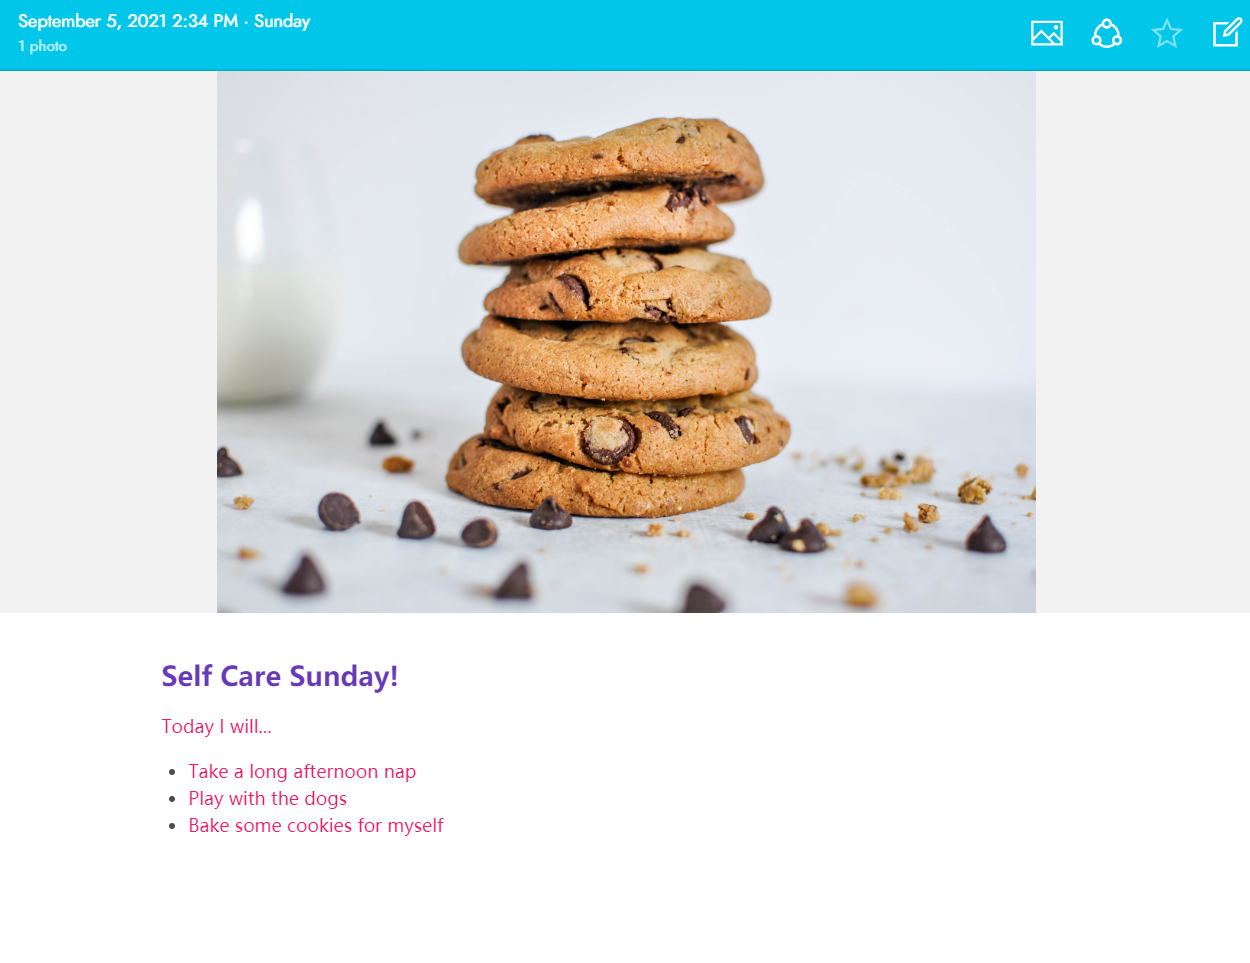 Create fun, dynamic and colorful journal entries for Self Care Sunday using Journey